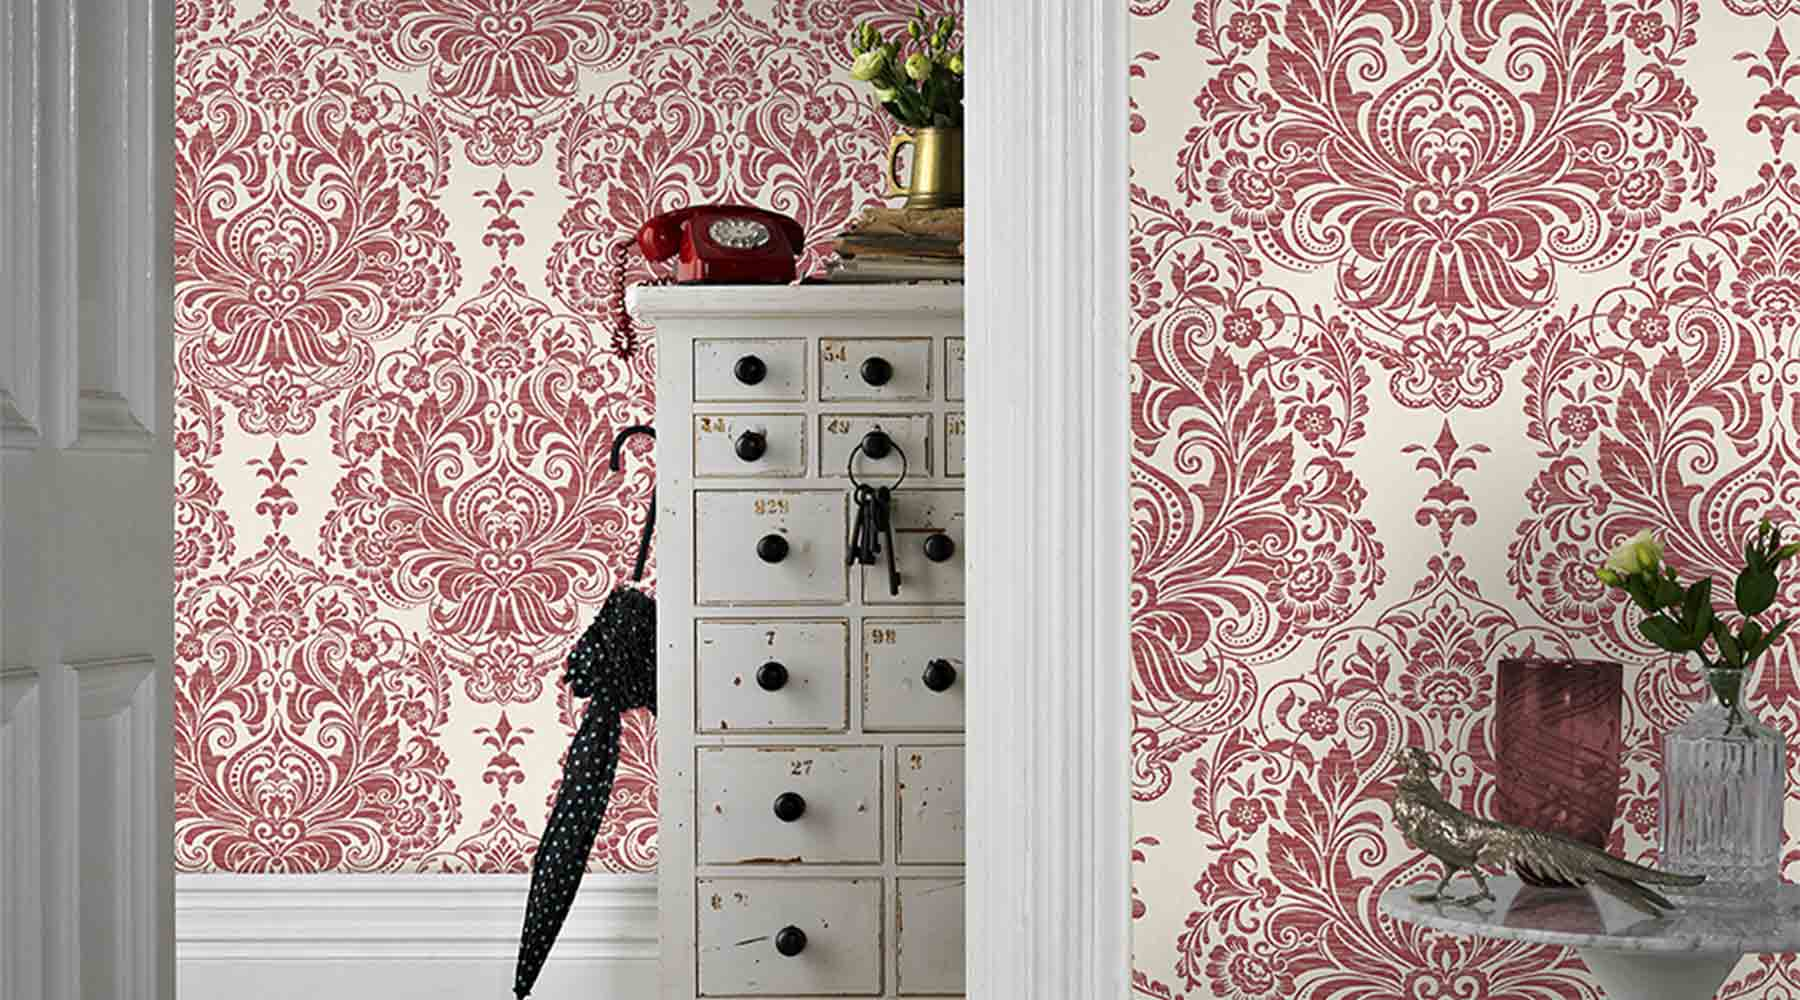 How to Style a Room with Red Wallpaper